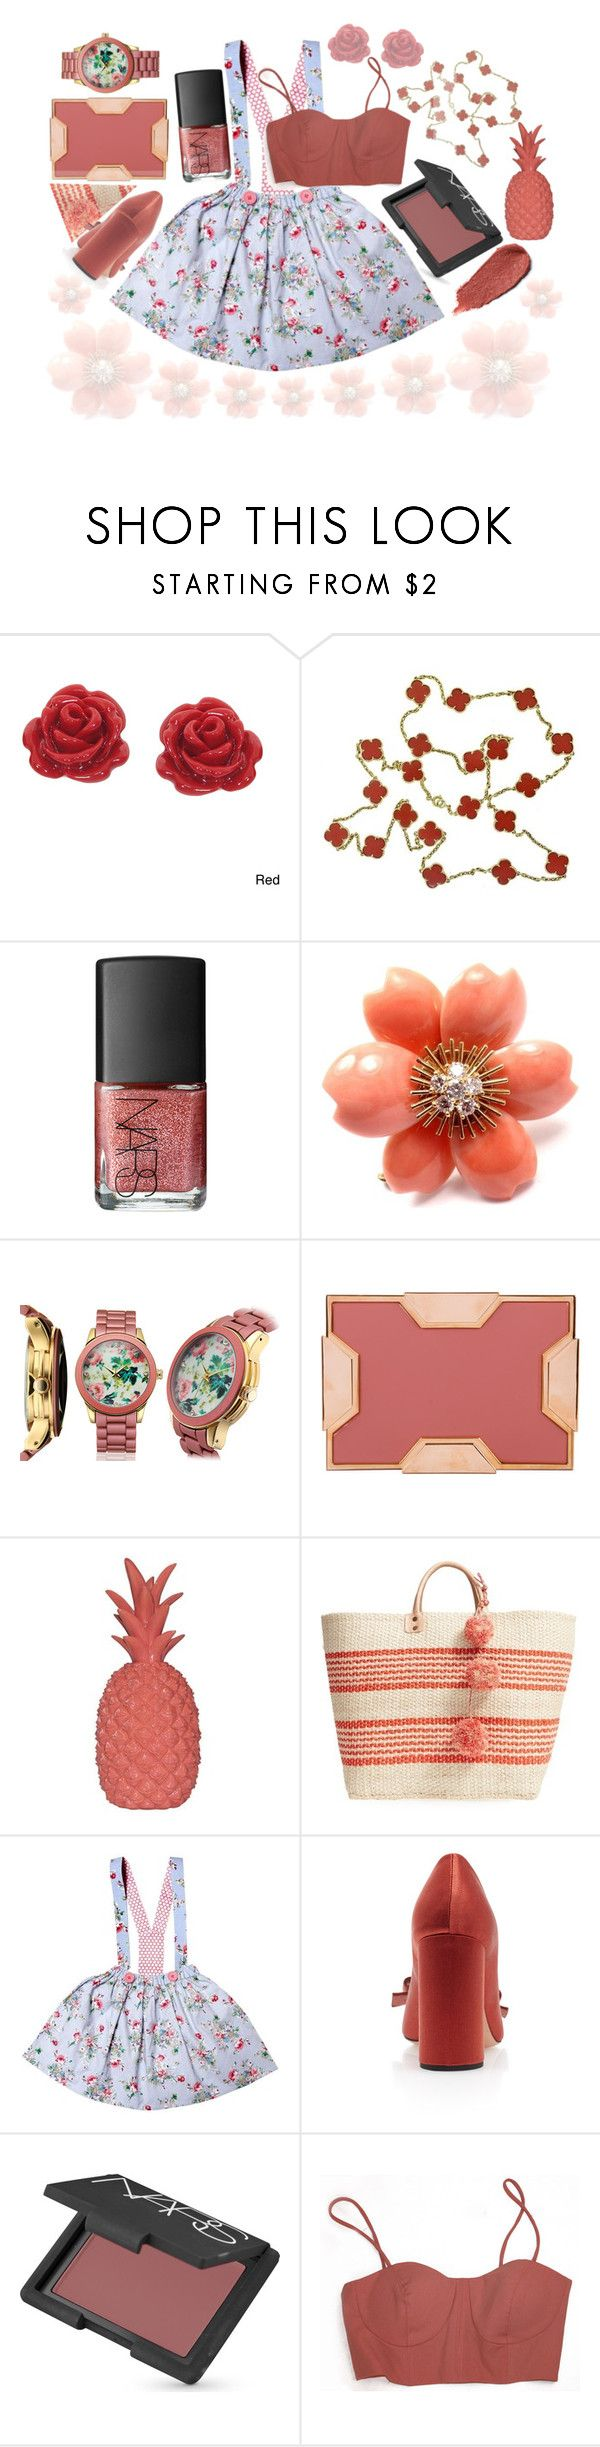 """""""THICK"""" by galaxy-moon-stars ❤ liked on Polyvore featuring Eternally Haute, Van Cleef & Arpels, NARS Cosmetics, Picard & Cie, Lee Savage, Mar y Sol and Kjaer Weis"""